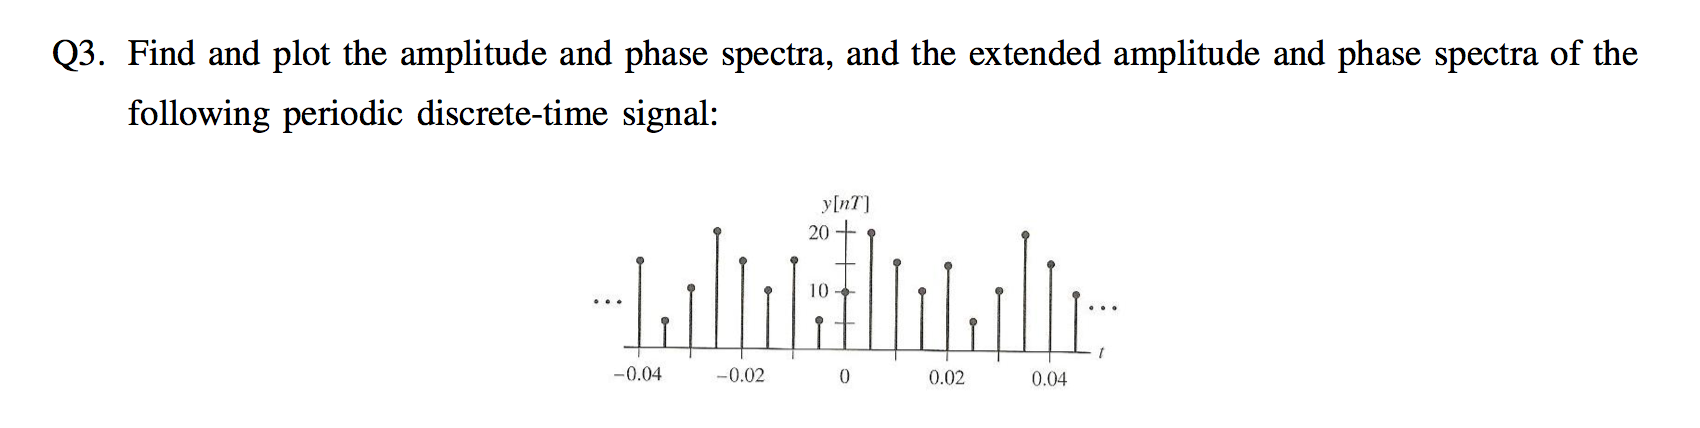 Find and plot the amplitude and phase spectra, and